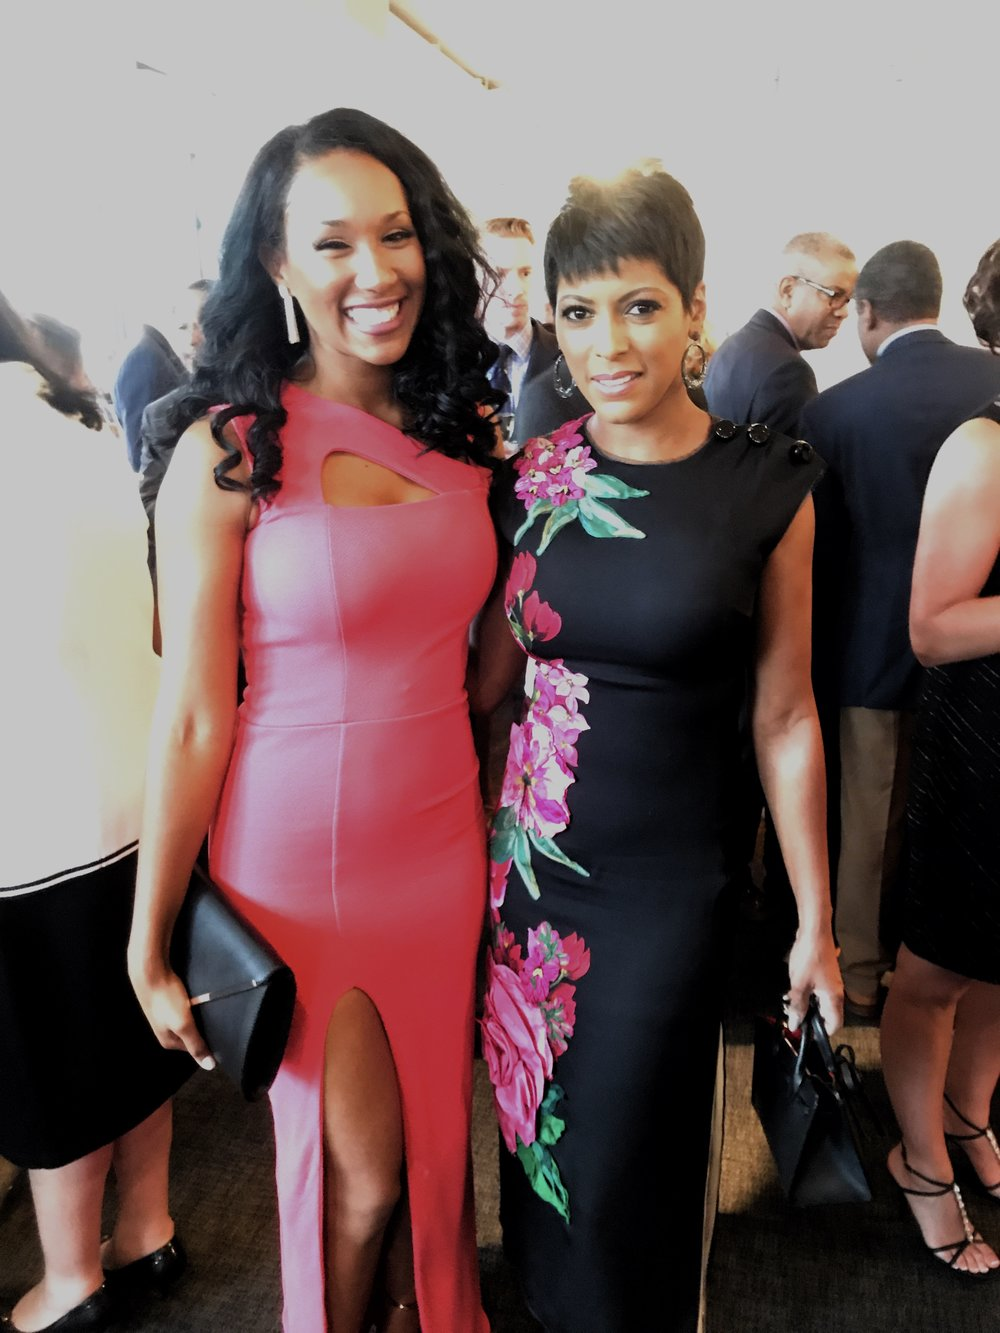 Got to meet journalist Tamron Hall!